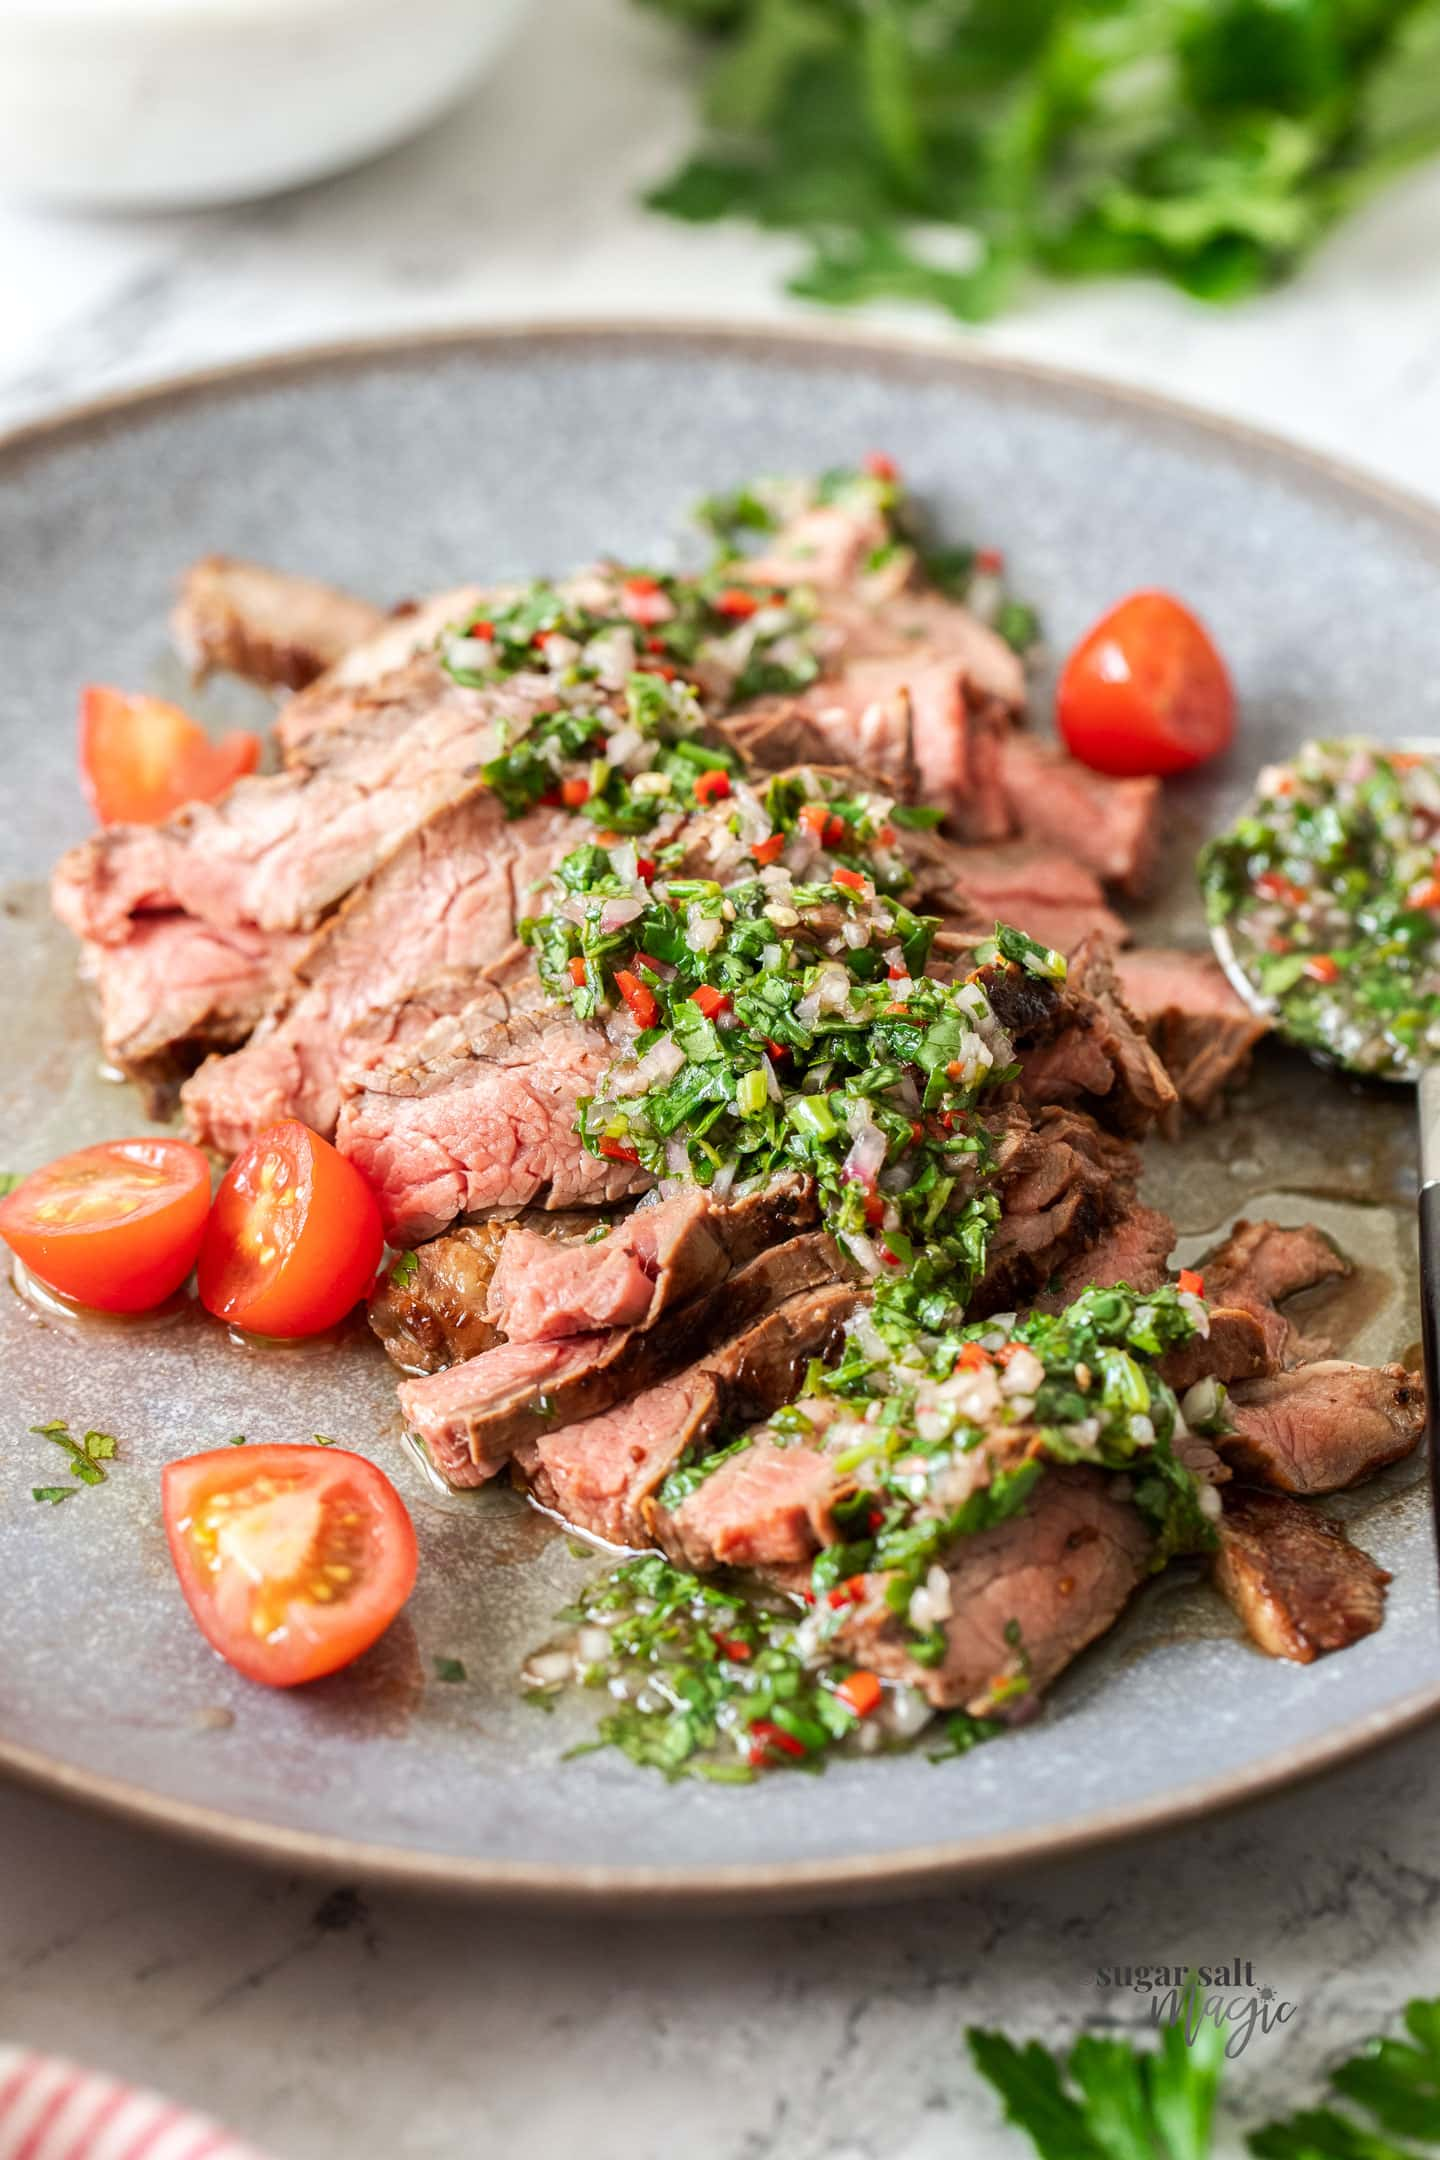 Sliced steak on a grey plate with green sauce over it.